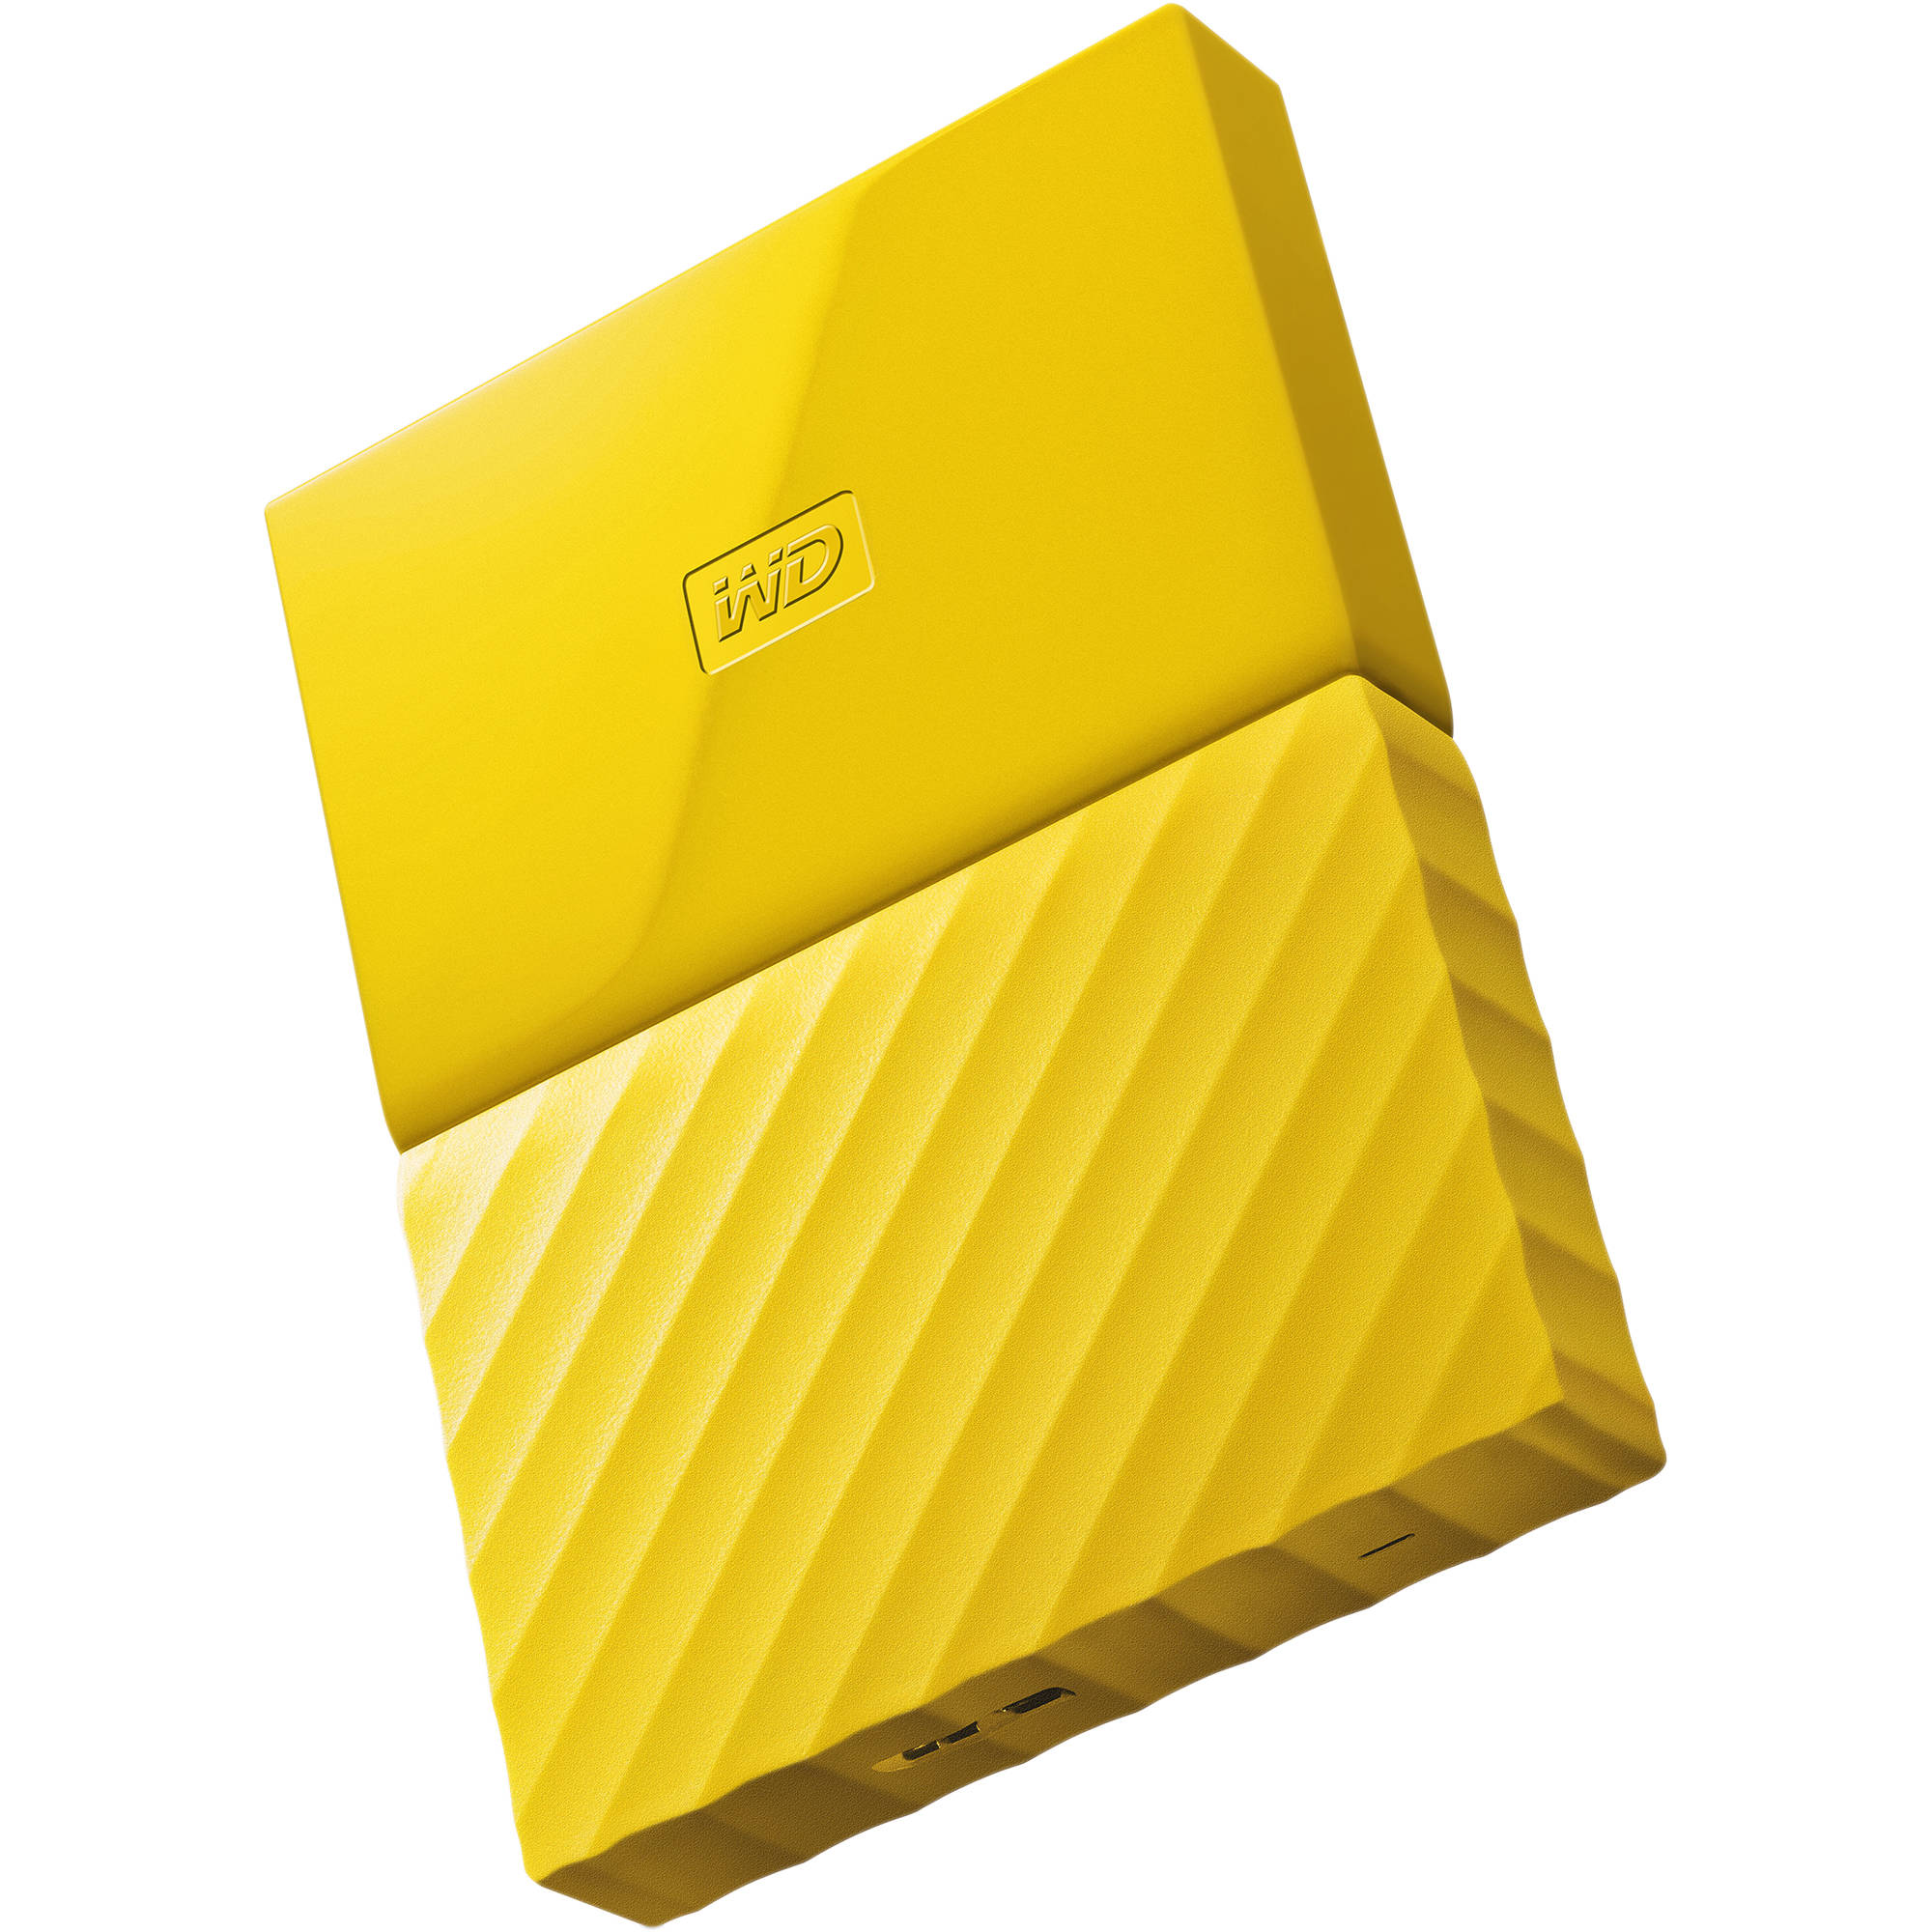 Ổ cứng di động Western Digital My Passport 1Tb USB3.0 New - Vàng